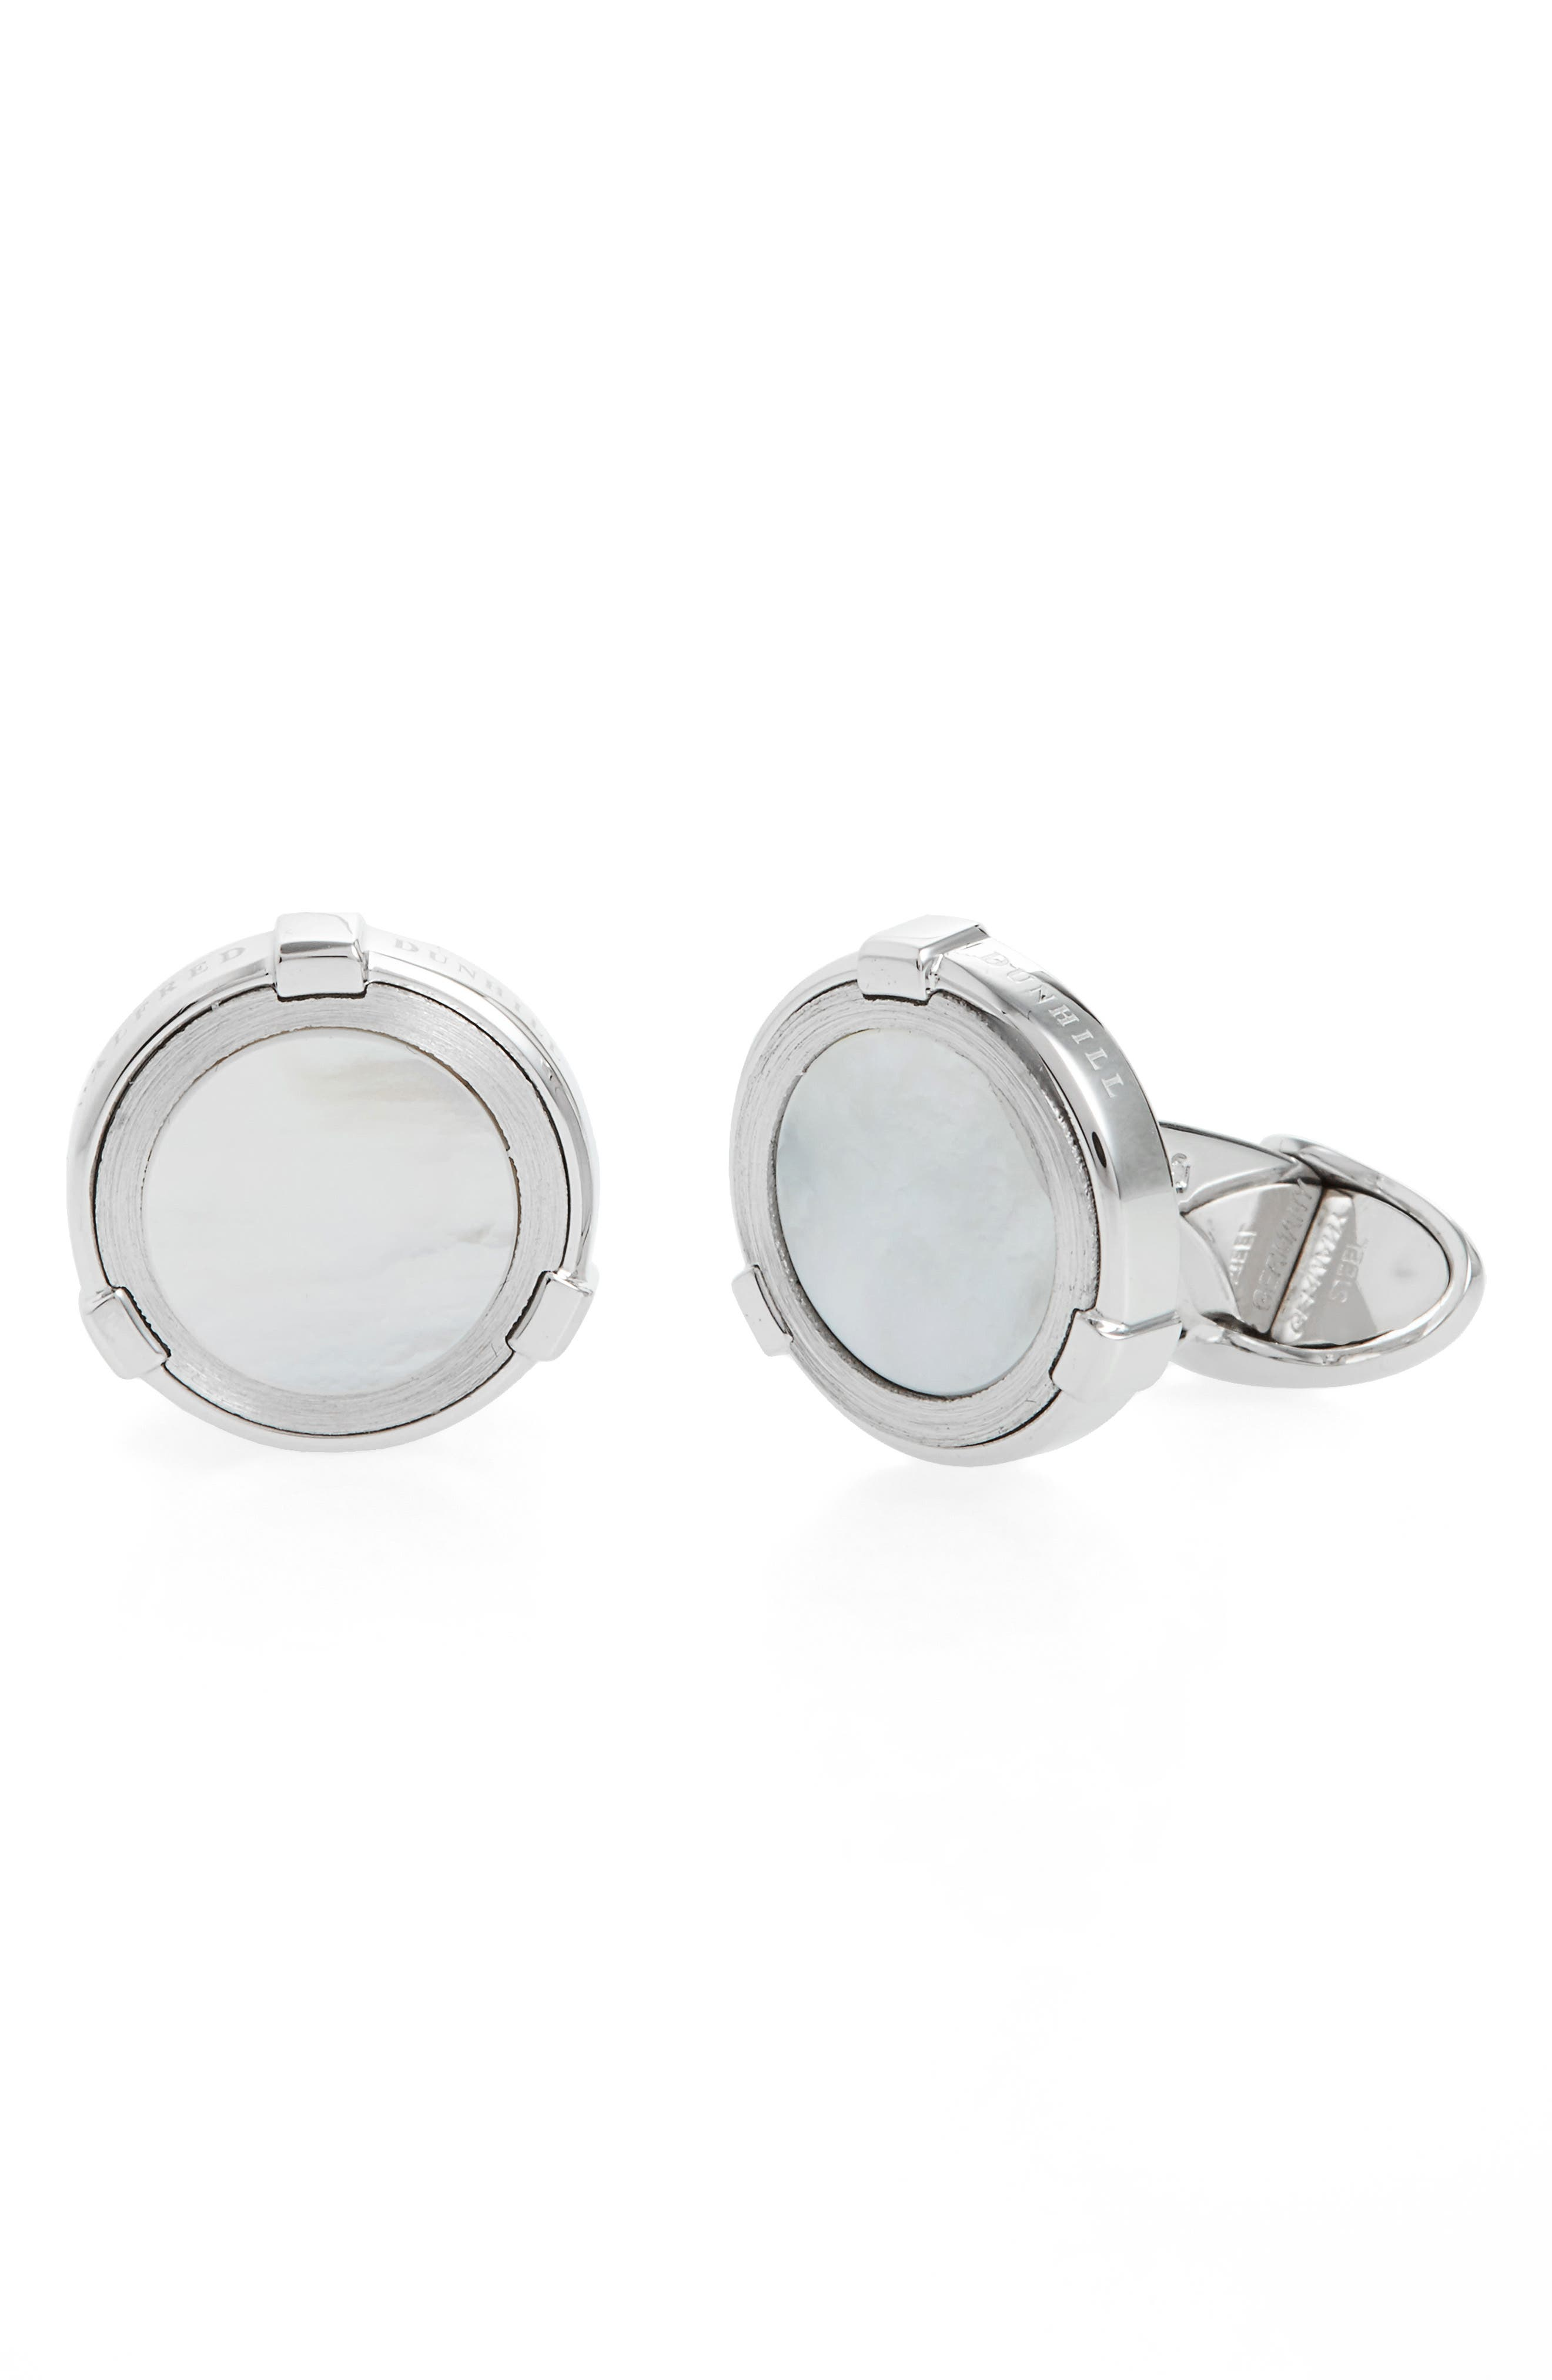 Dunhill Latch Station Silver Cuff Links with Mother-of-Pearl Vc69nTbuMy